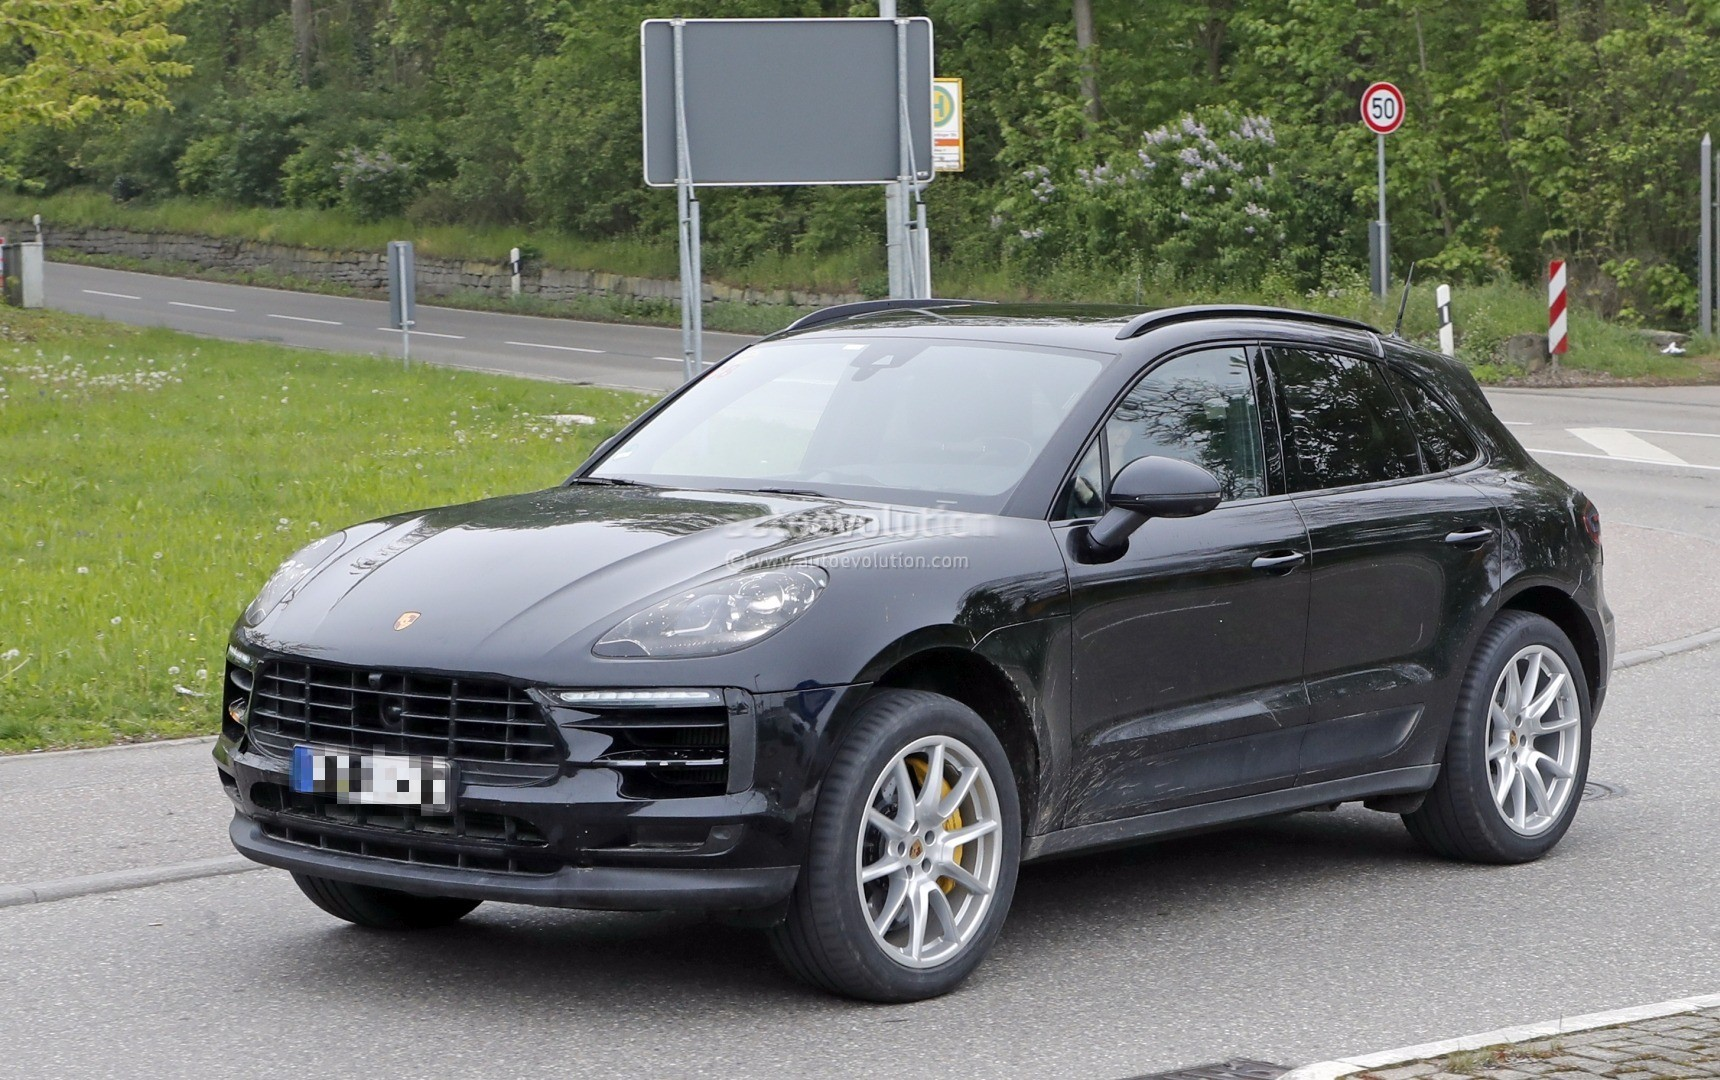 2019 porsche macan facelift getting hotter but porsche denies gt version autoevolution. Black Bedroom Furniture Sets. Home Design Ideas